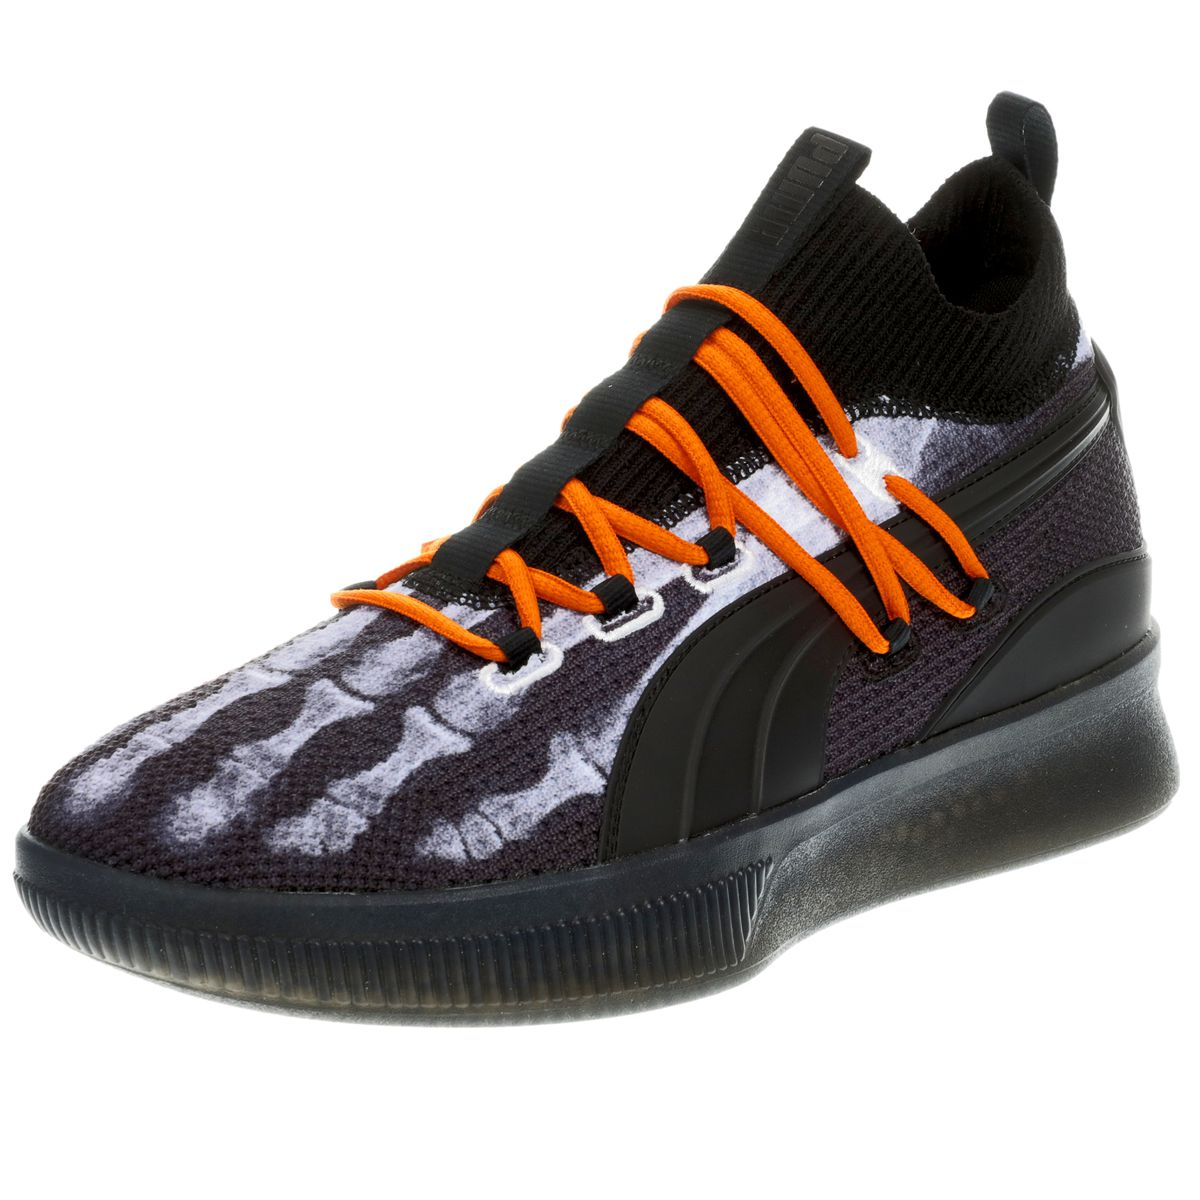 0cffd7080722 Puma s second colorway is the Halloween-themed Clyde Court X-Ray ...